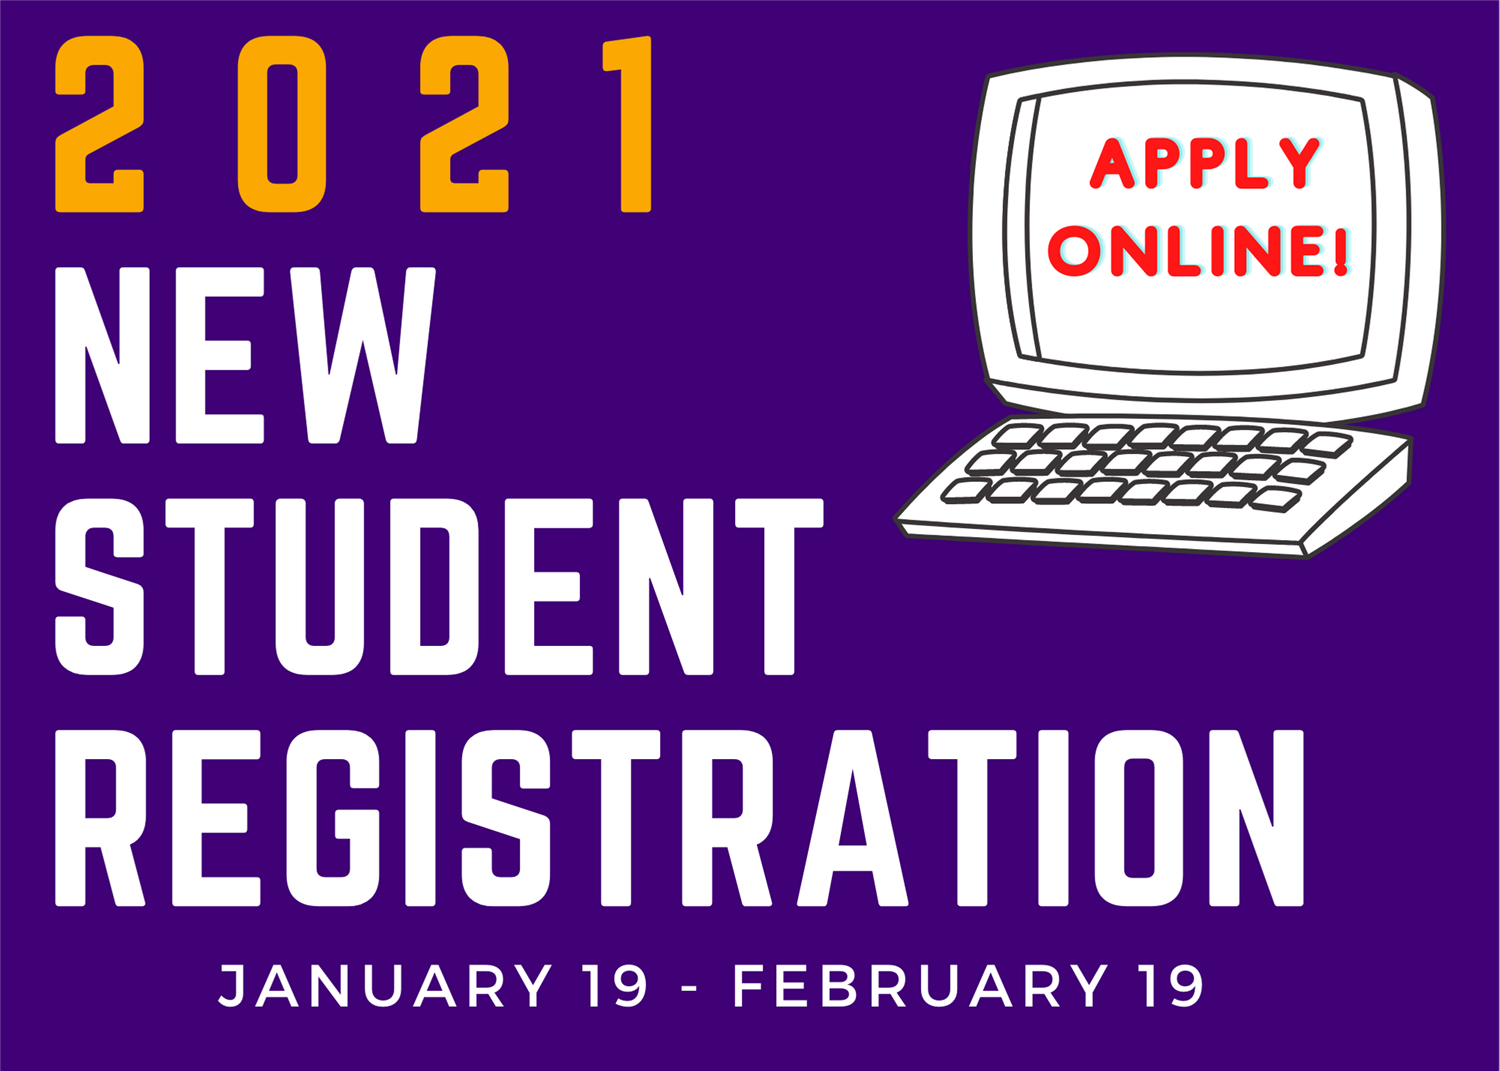 2021 New Student Registration